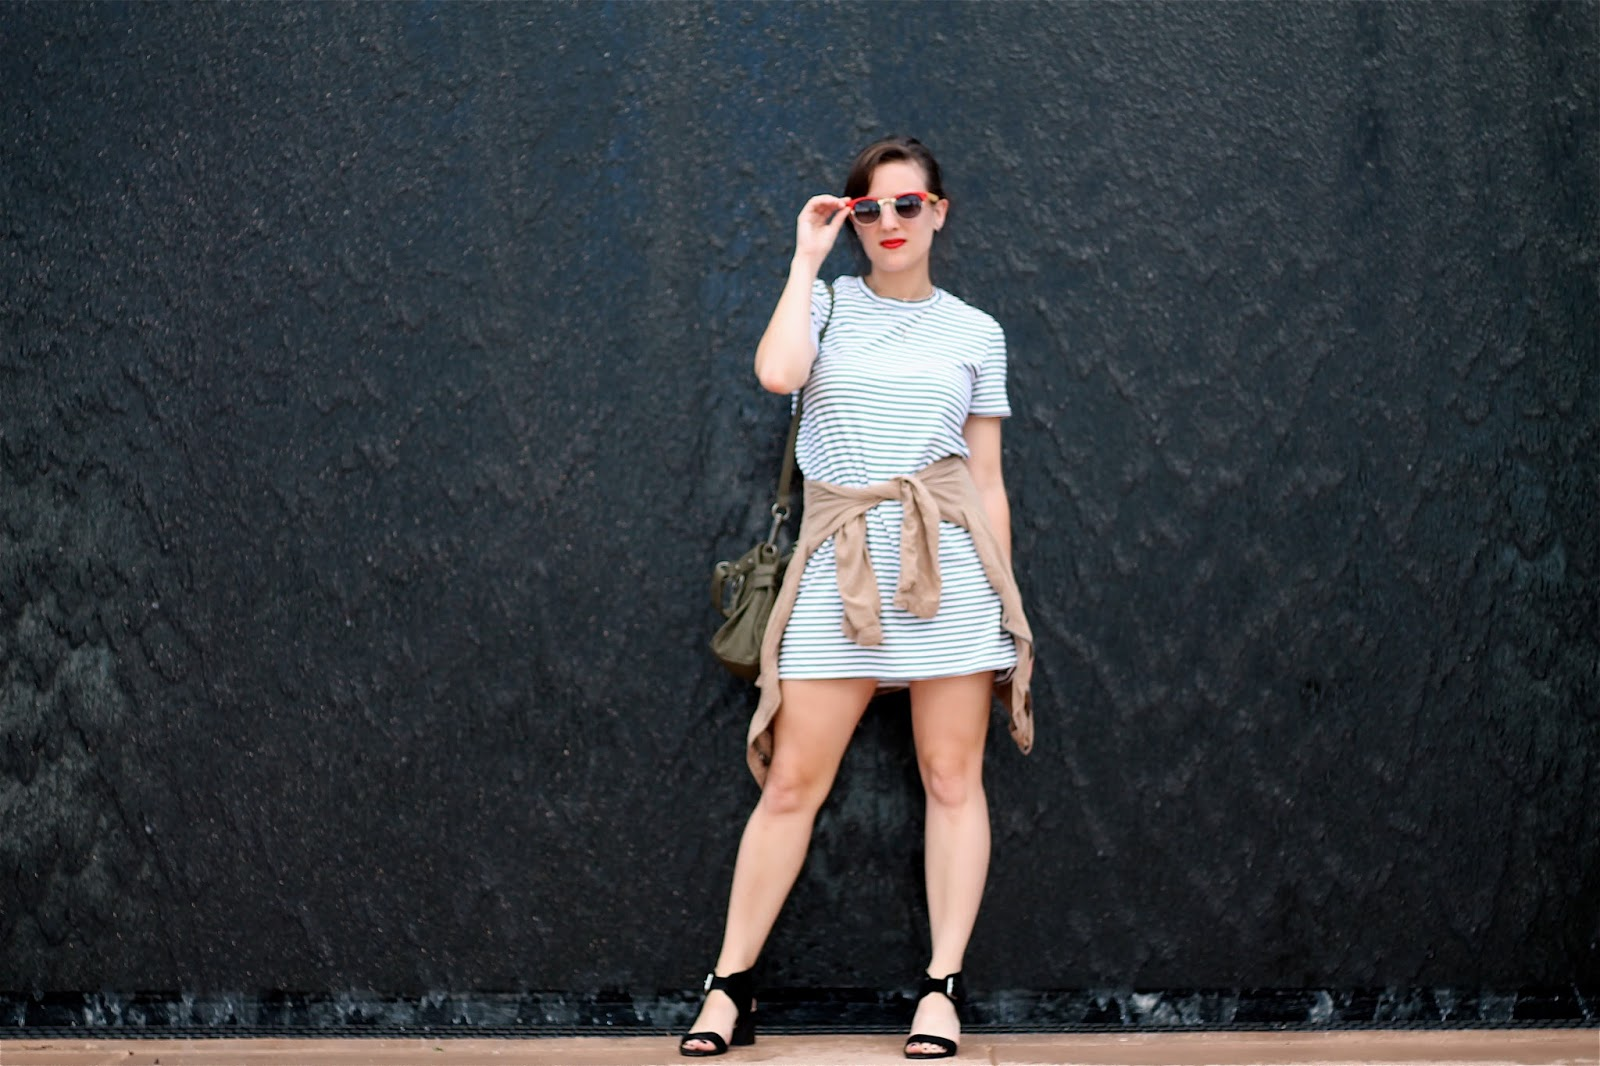 forever 21, fashion blog, style blog, Miami fashion blogger, New York Style, capsule collection, Free People, Blue Planet Eyewear, Gap, Franco Sarto, Nordstrom Rack, ootd, what I wore, style blogger